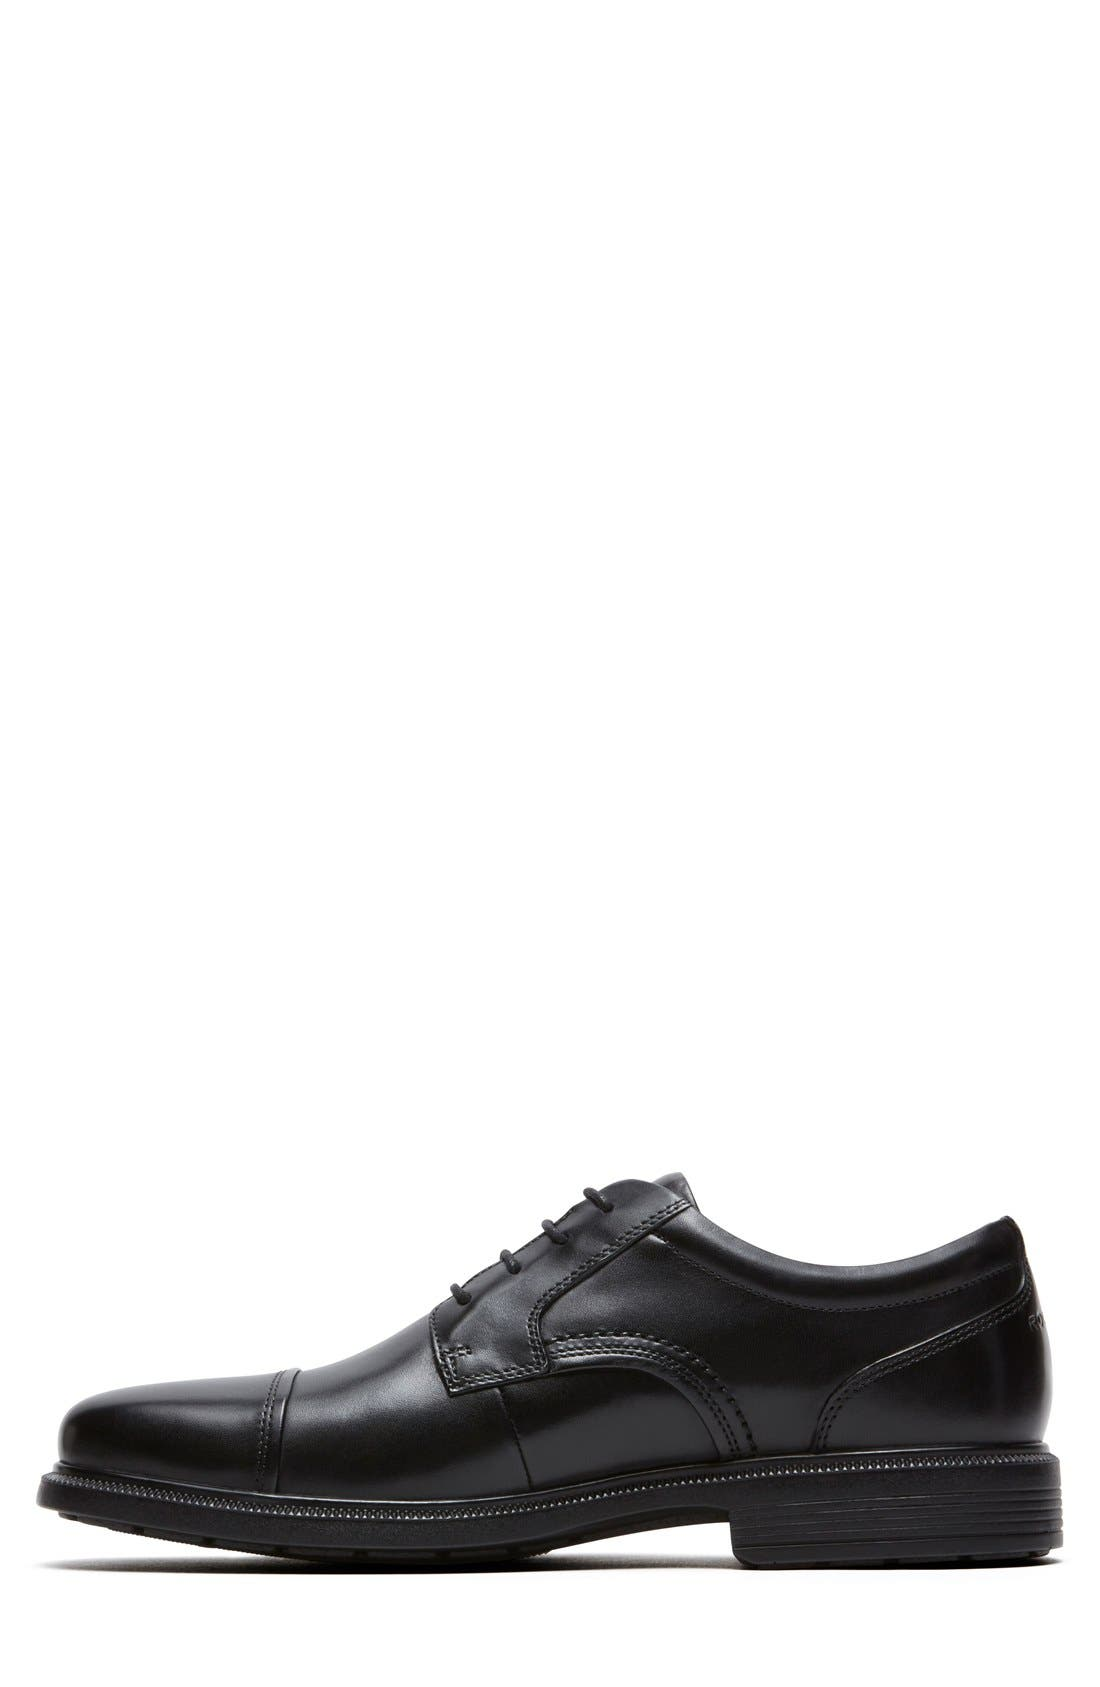 'DresSports Luxe' Cap Toe Derby,                             Alternate thumbnail 2, color,                             BLACK